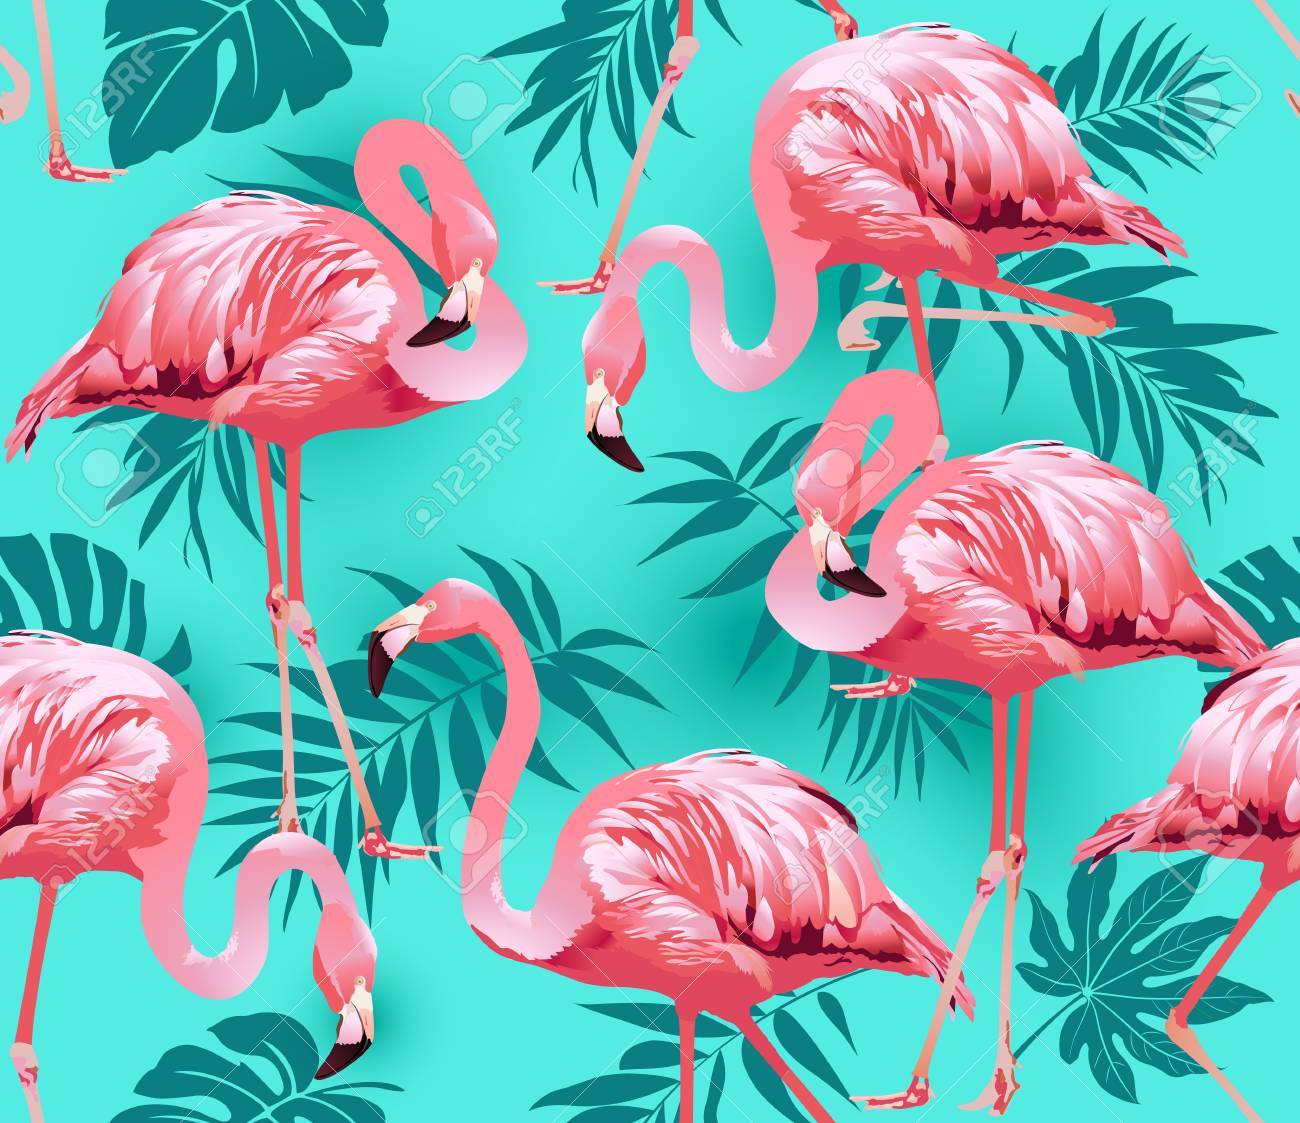 Flamingo Bird and Tropical Flowers Background - Seamless pattern vector - 73544221